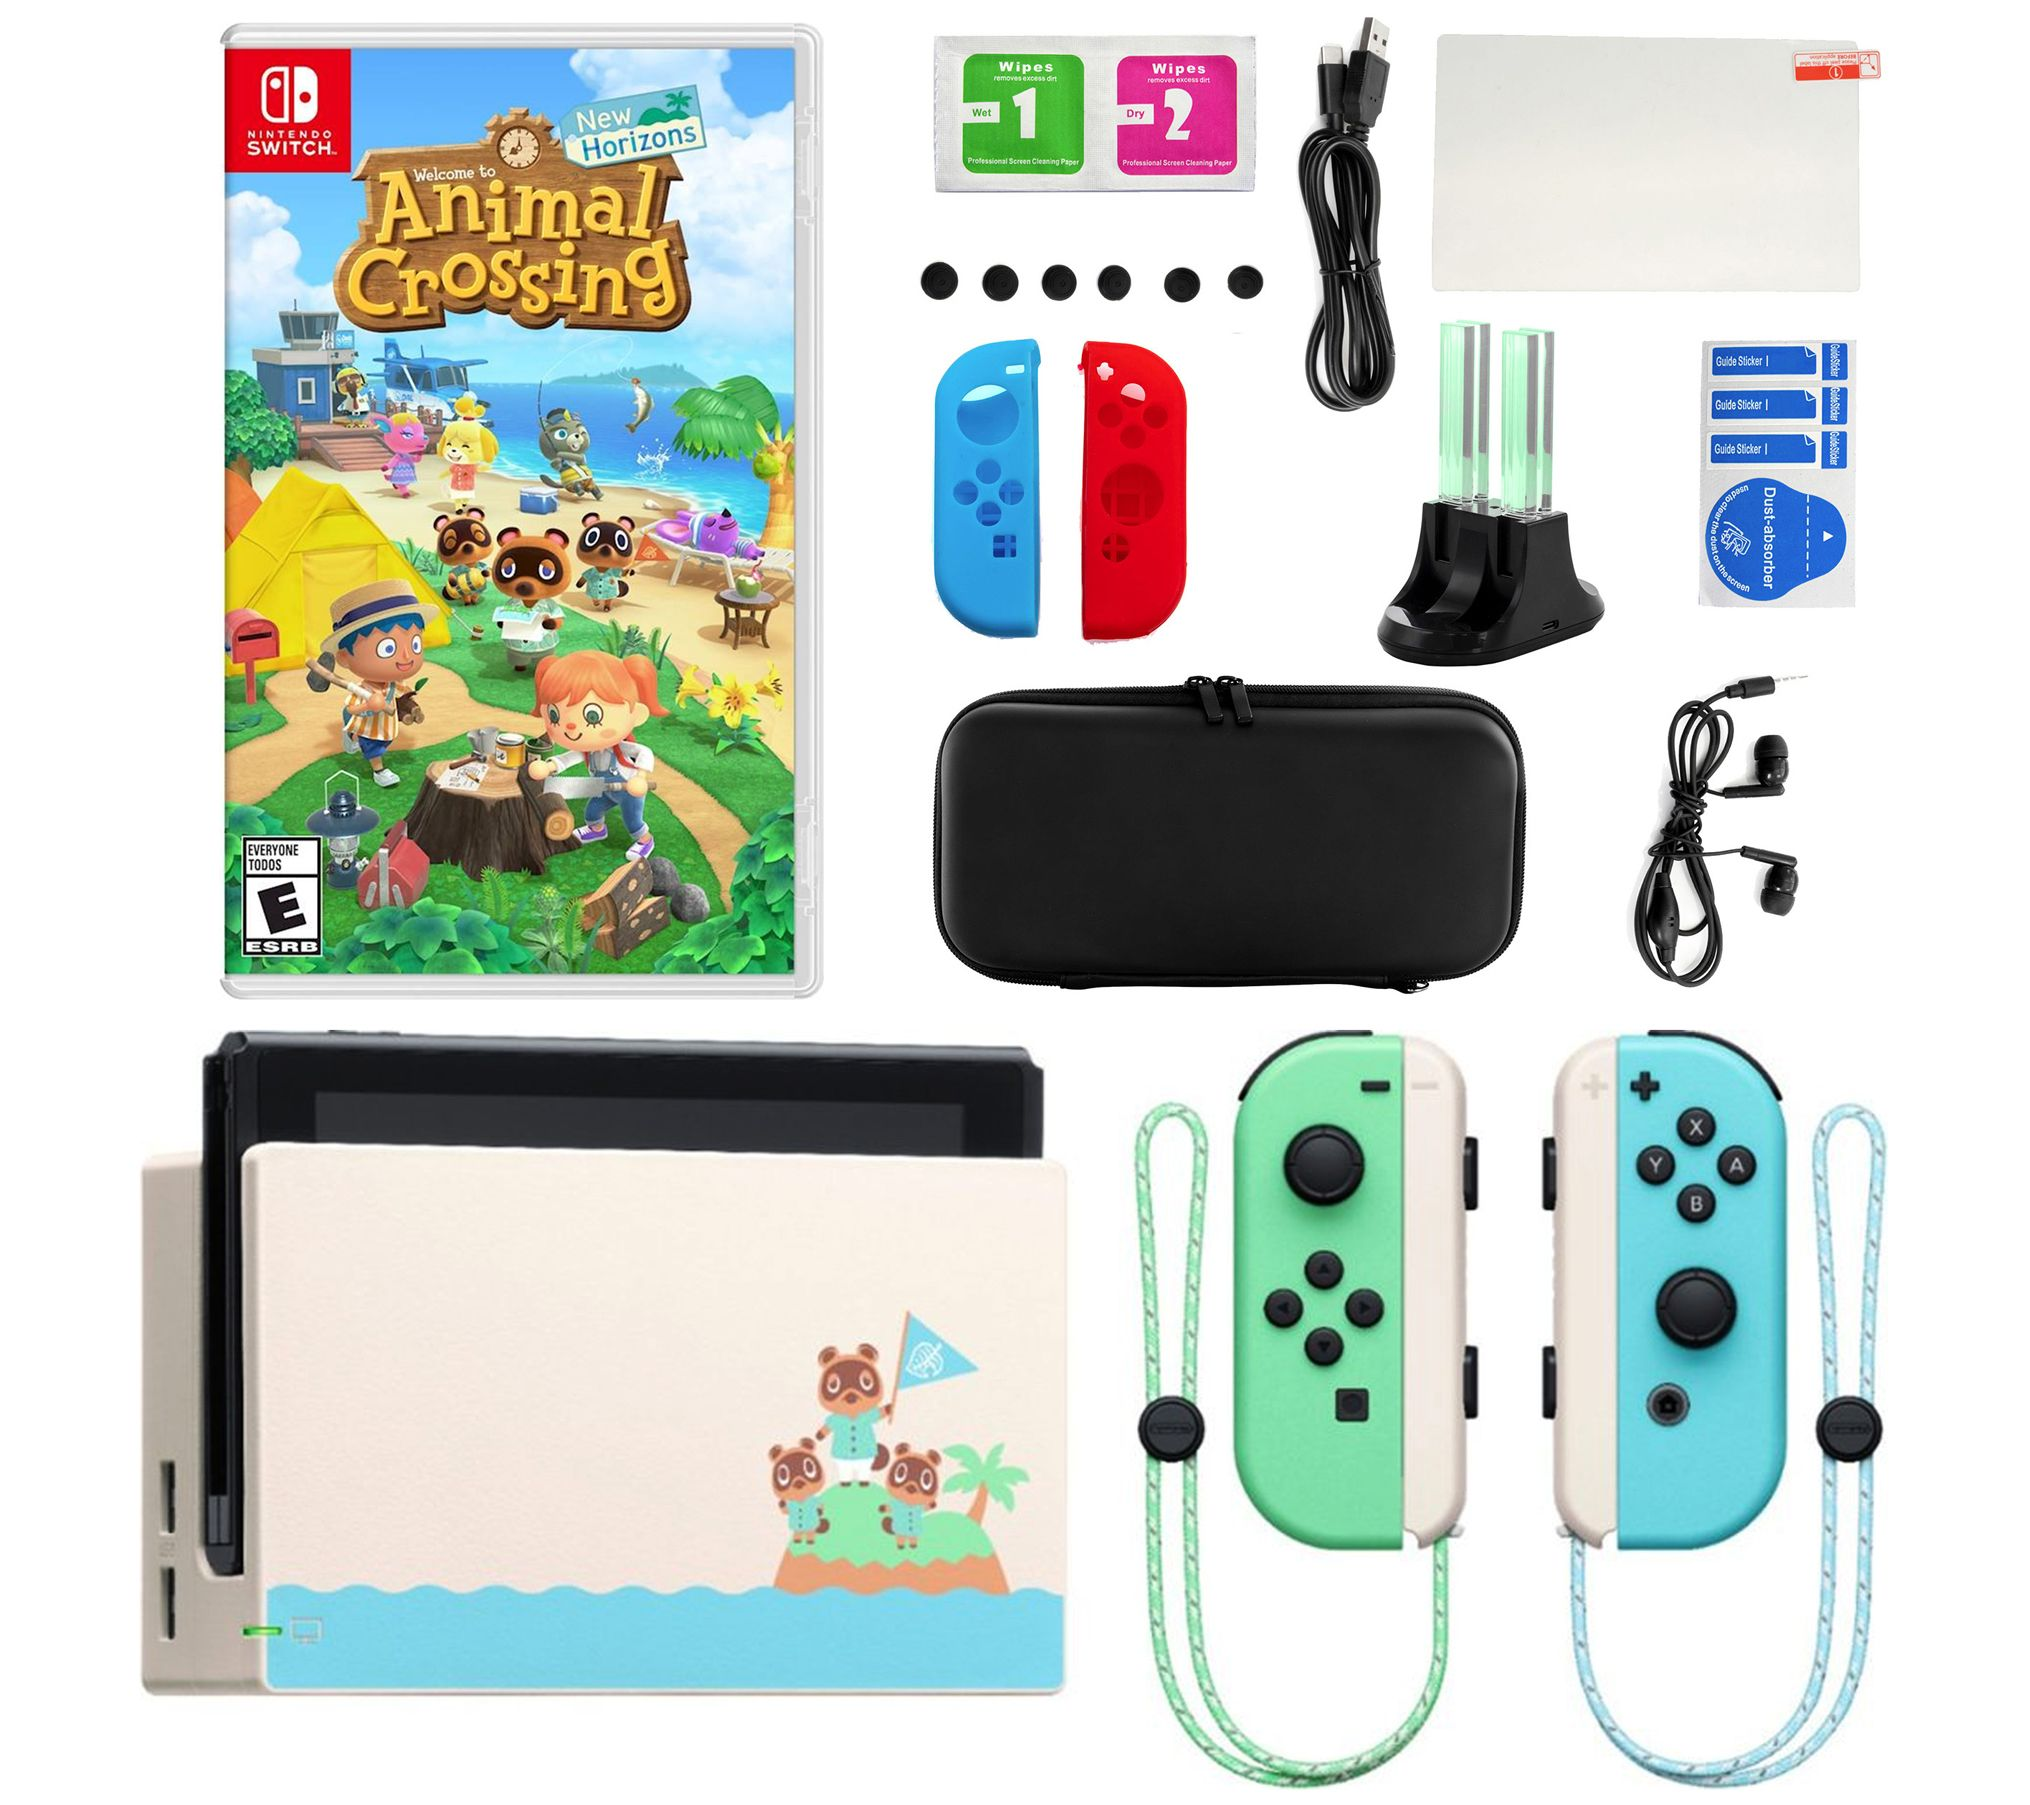 Nintendo Switch Special Edition Console With Animal Crossing